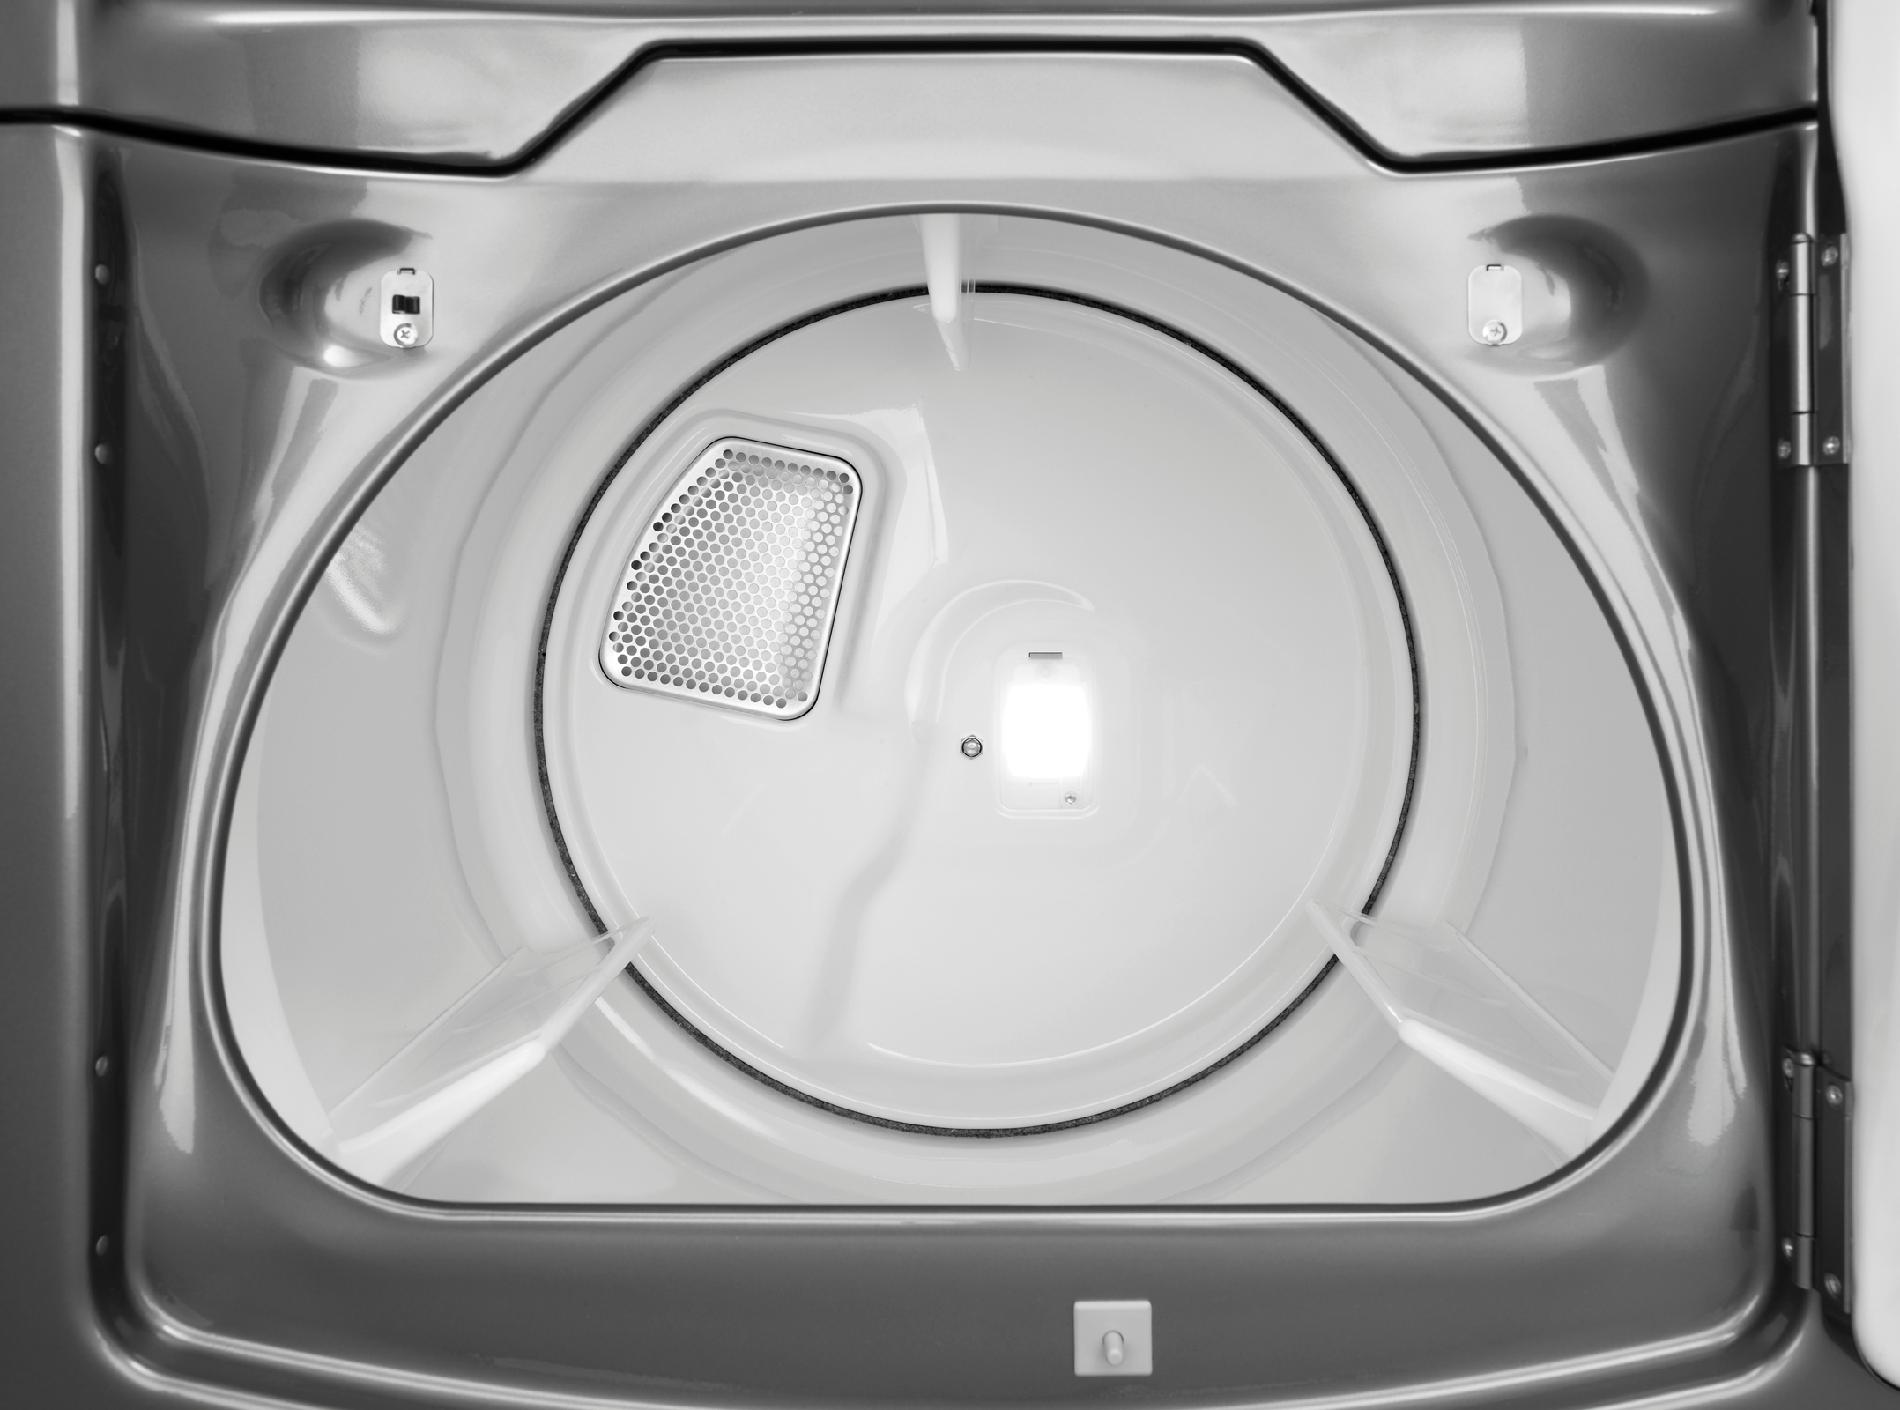 Whirlpool 7.6 cu. ft. Cabrio® Platinum Gas Dryer w/ Enhanced Touch-Up Steam Cycle - Chrome Shadow